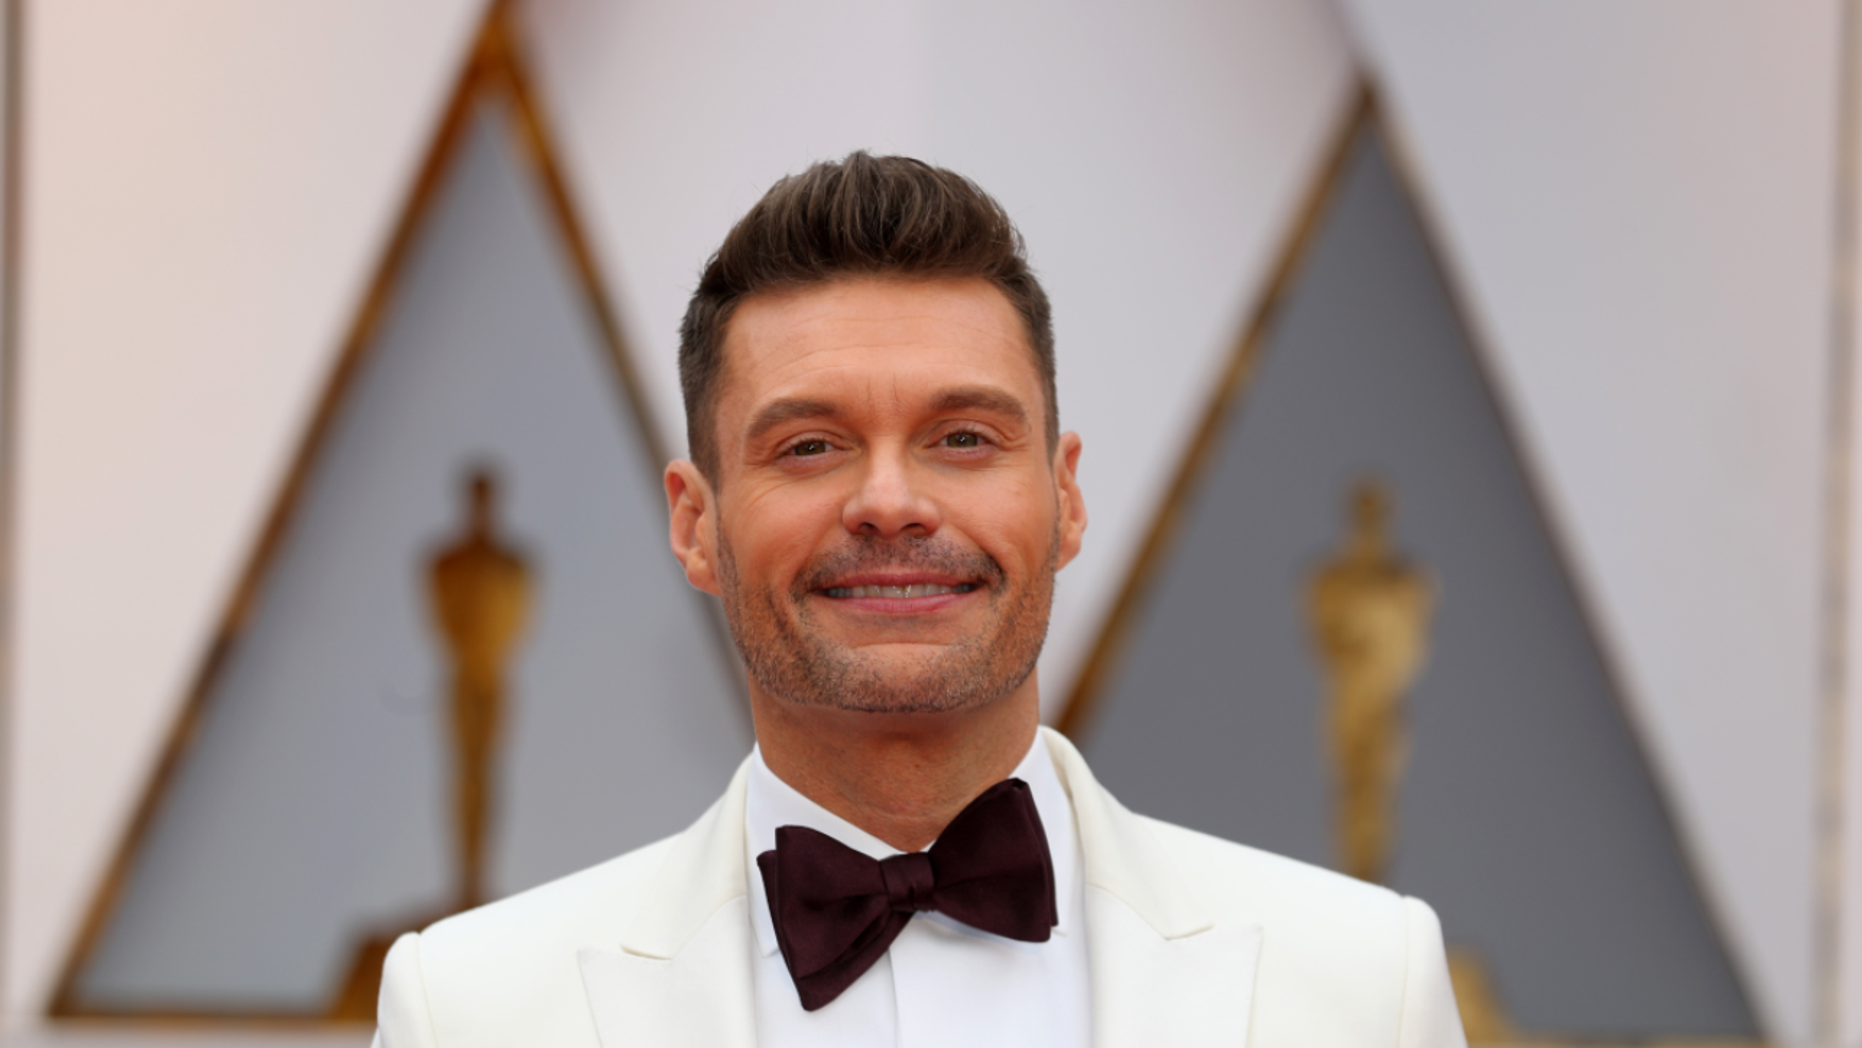 Ryan Seacrest opens up about having attention deficit disorder (ADD).